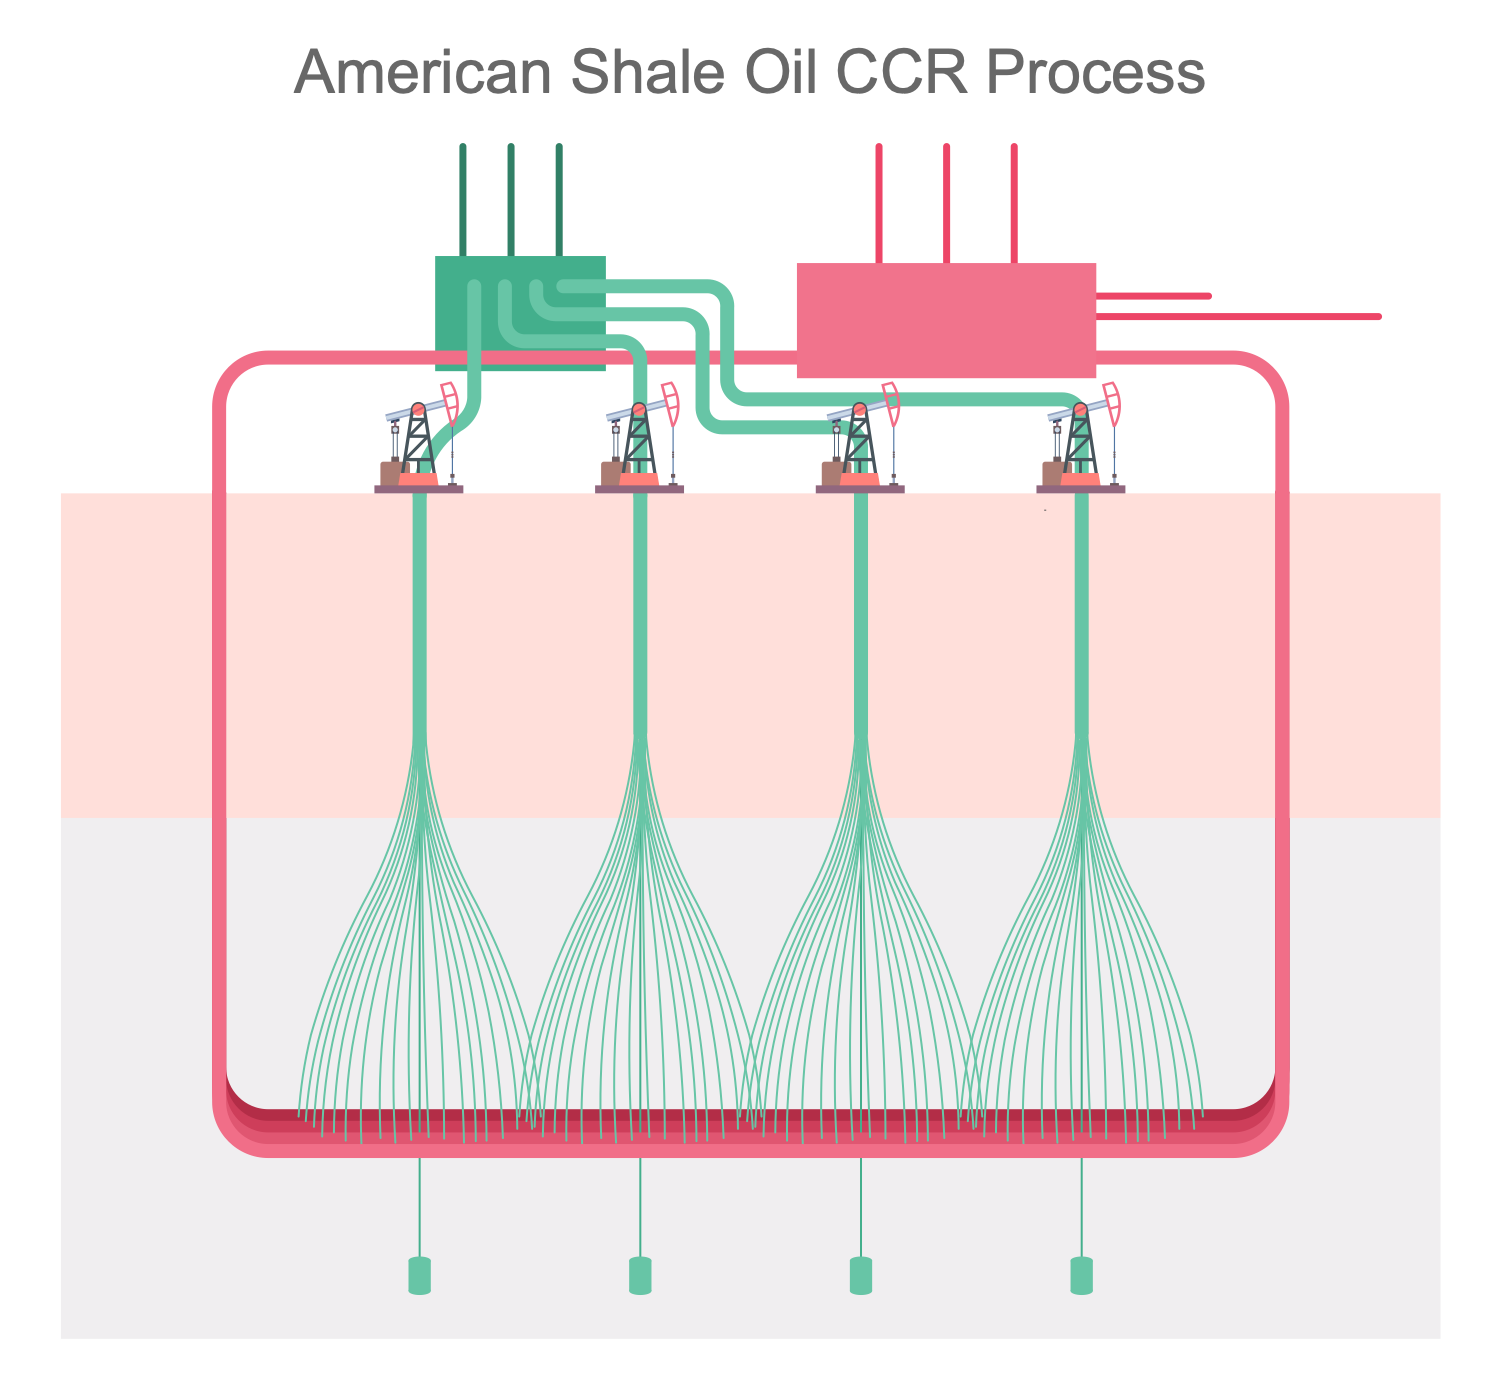 American Shale Oil CCR Process